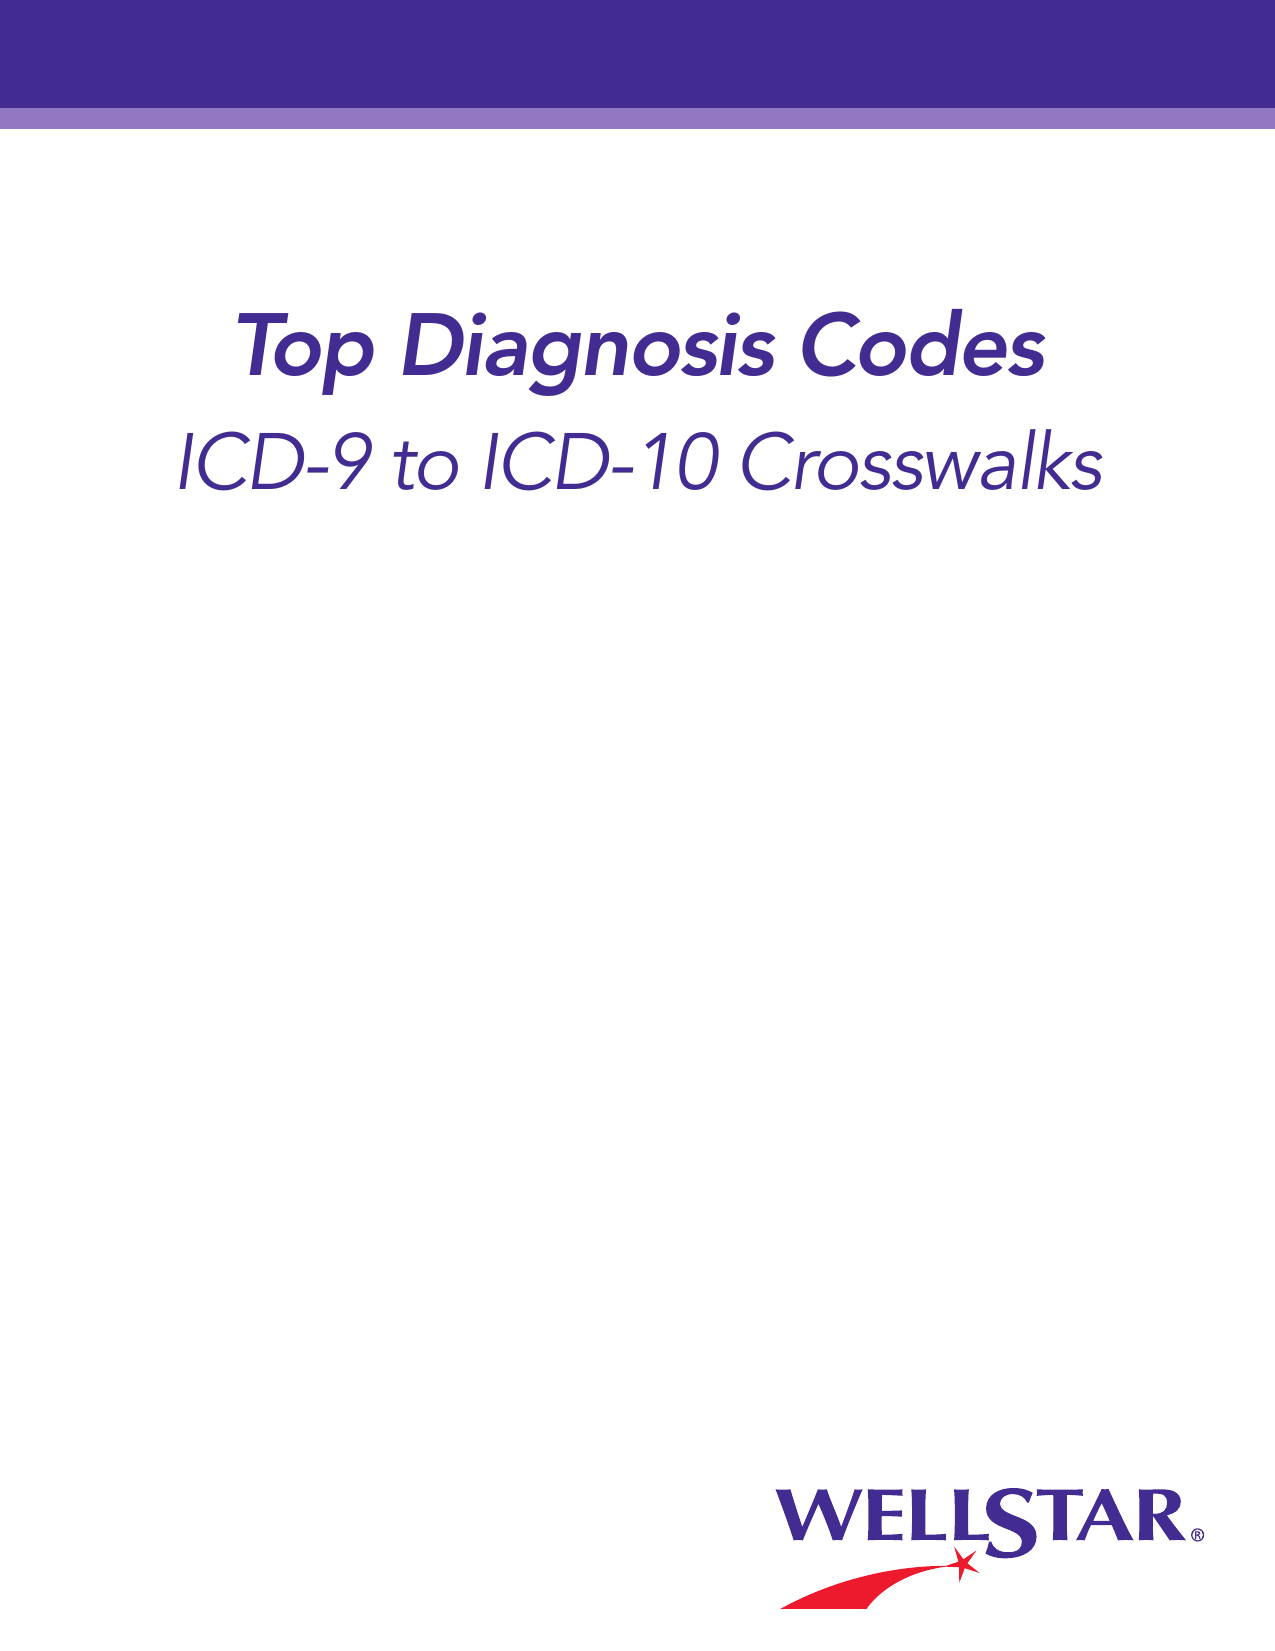 renal cancer hx icd 10)